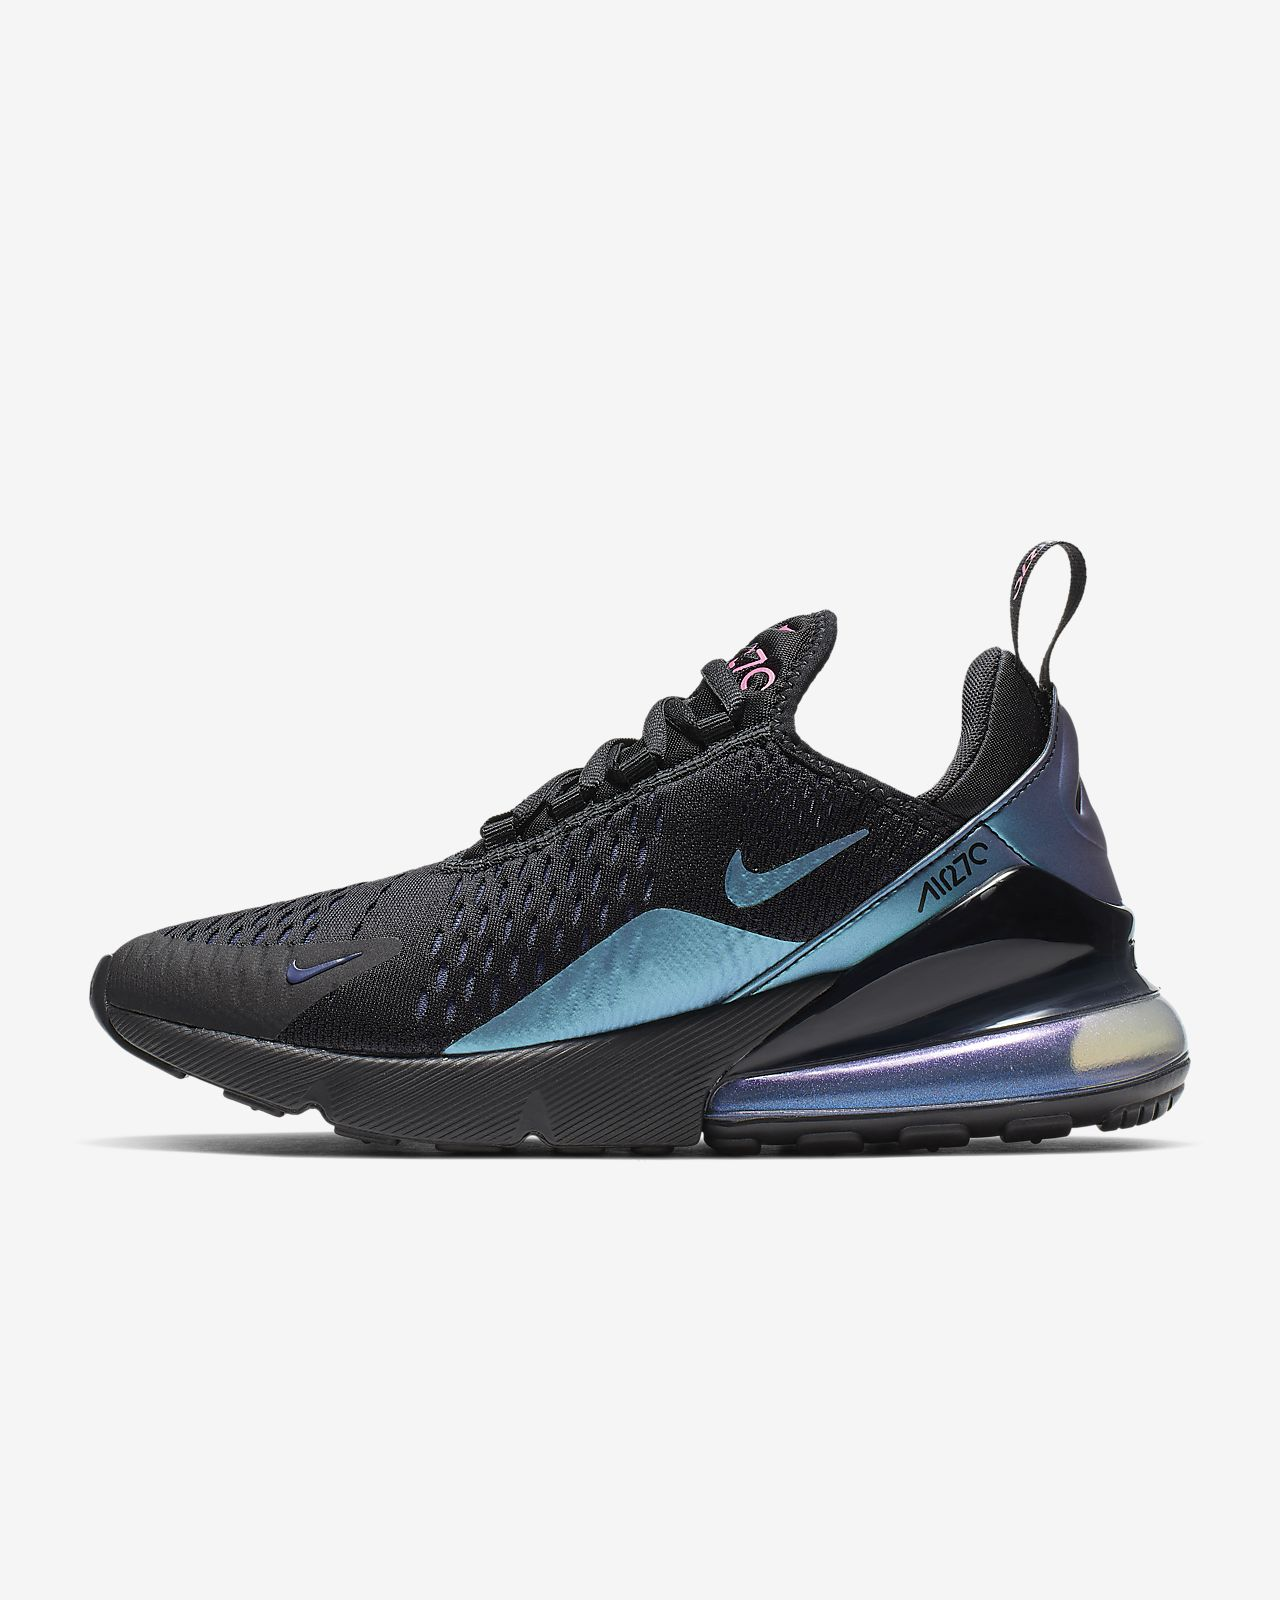 6ec7d853891642 Nike Air Max 270 Women s Shoe. Nike.com GB